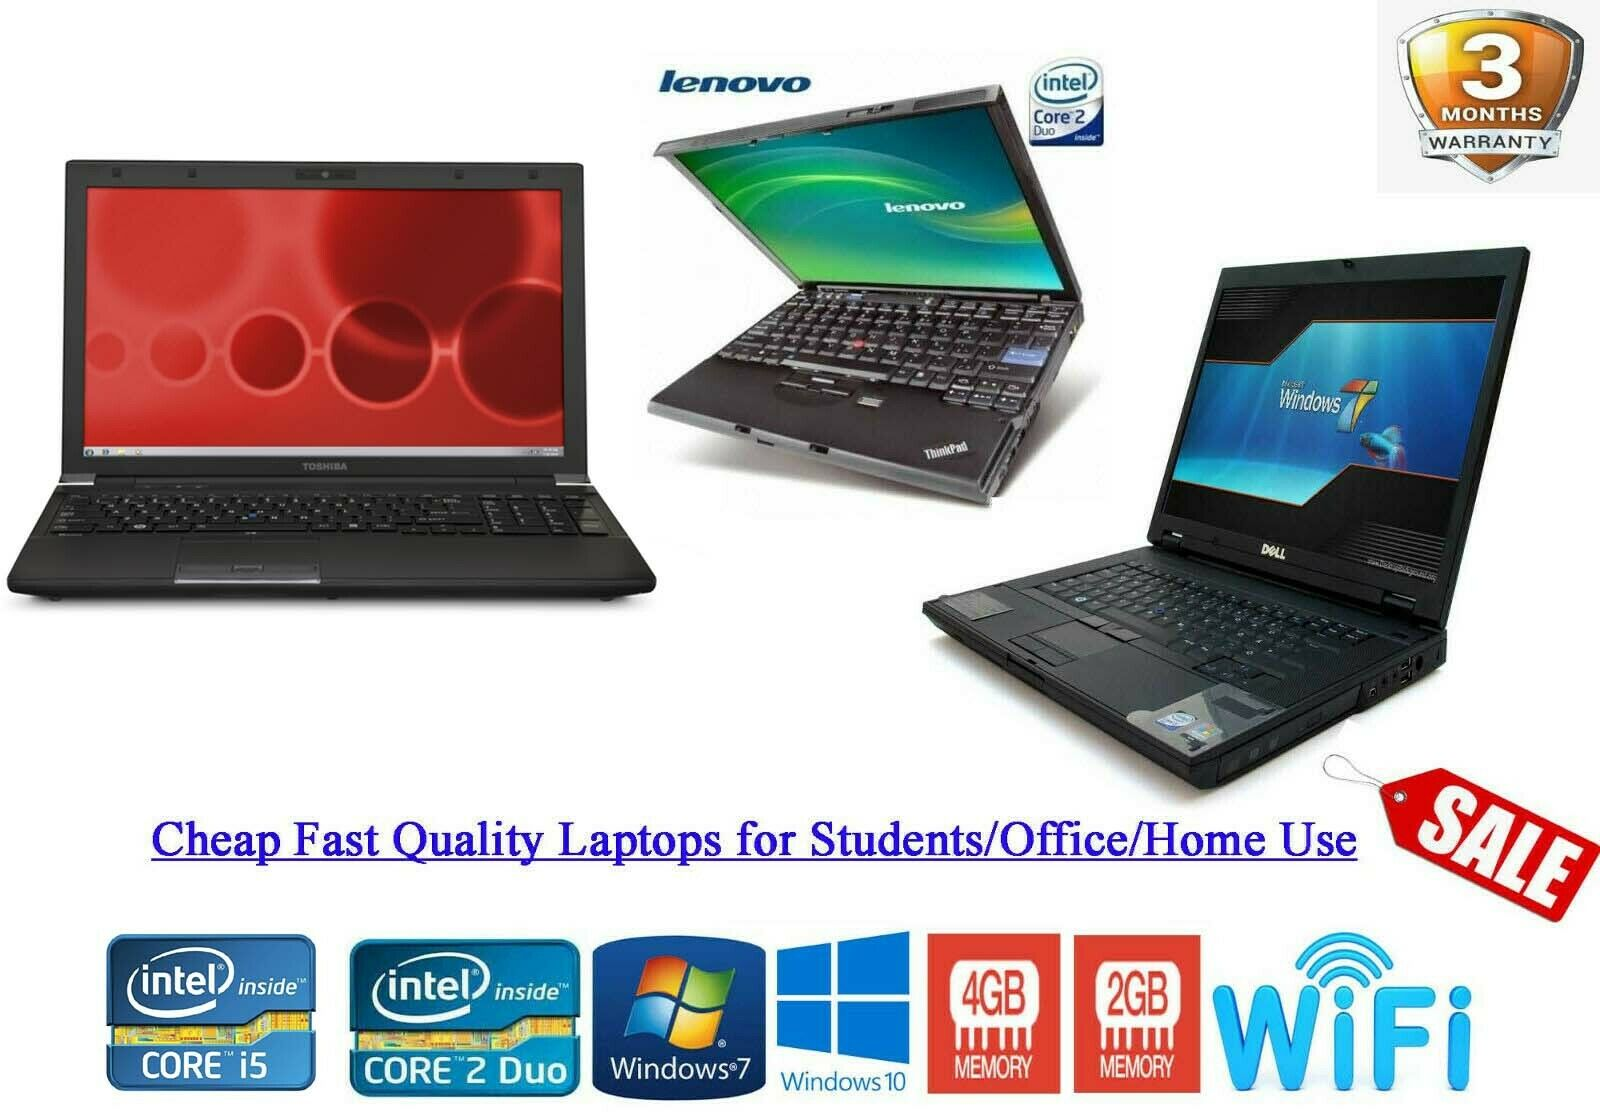 Laptop Windows - Cheap Fast Windows 10 LAPTOP i5 i3 Core 2 Duo 320GB 4GB RAM WIFI WARRANTY